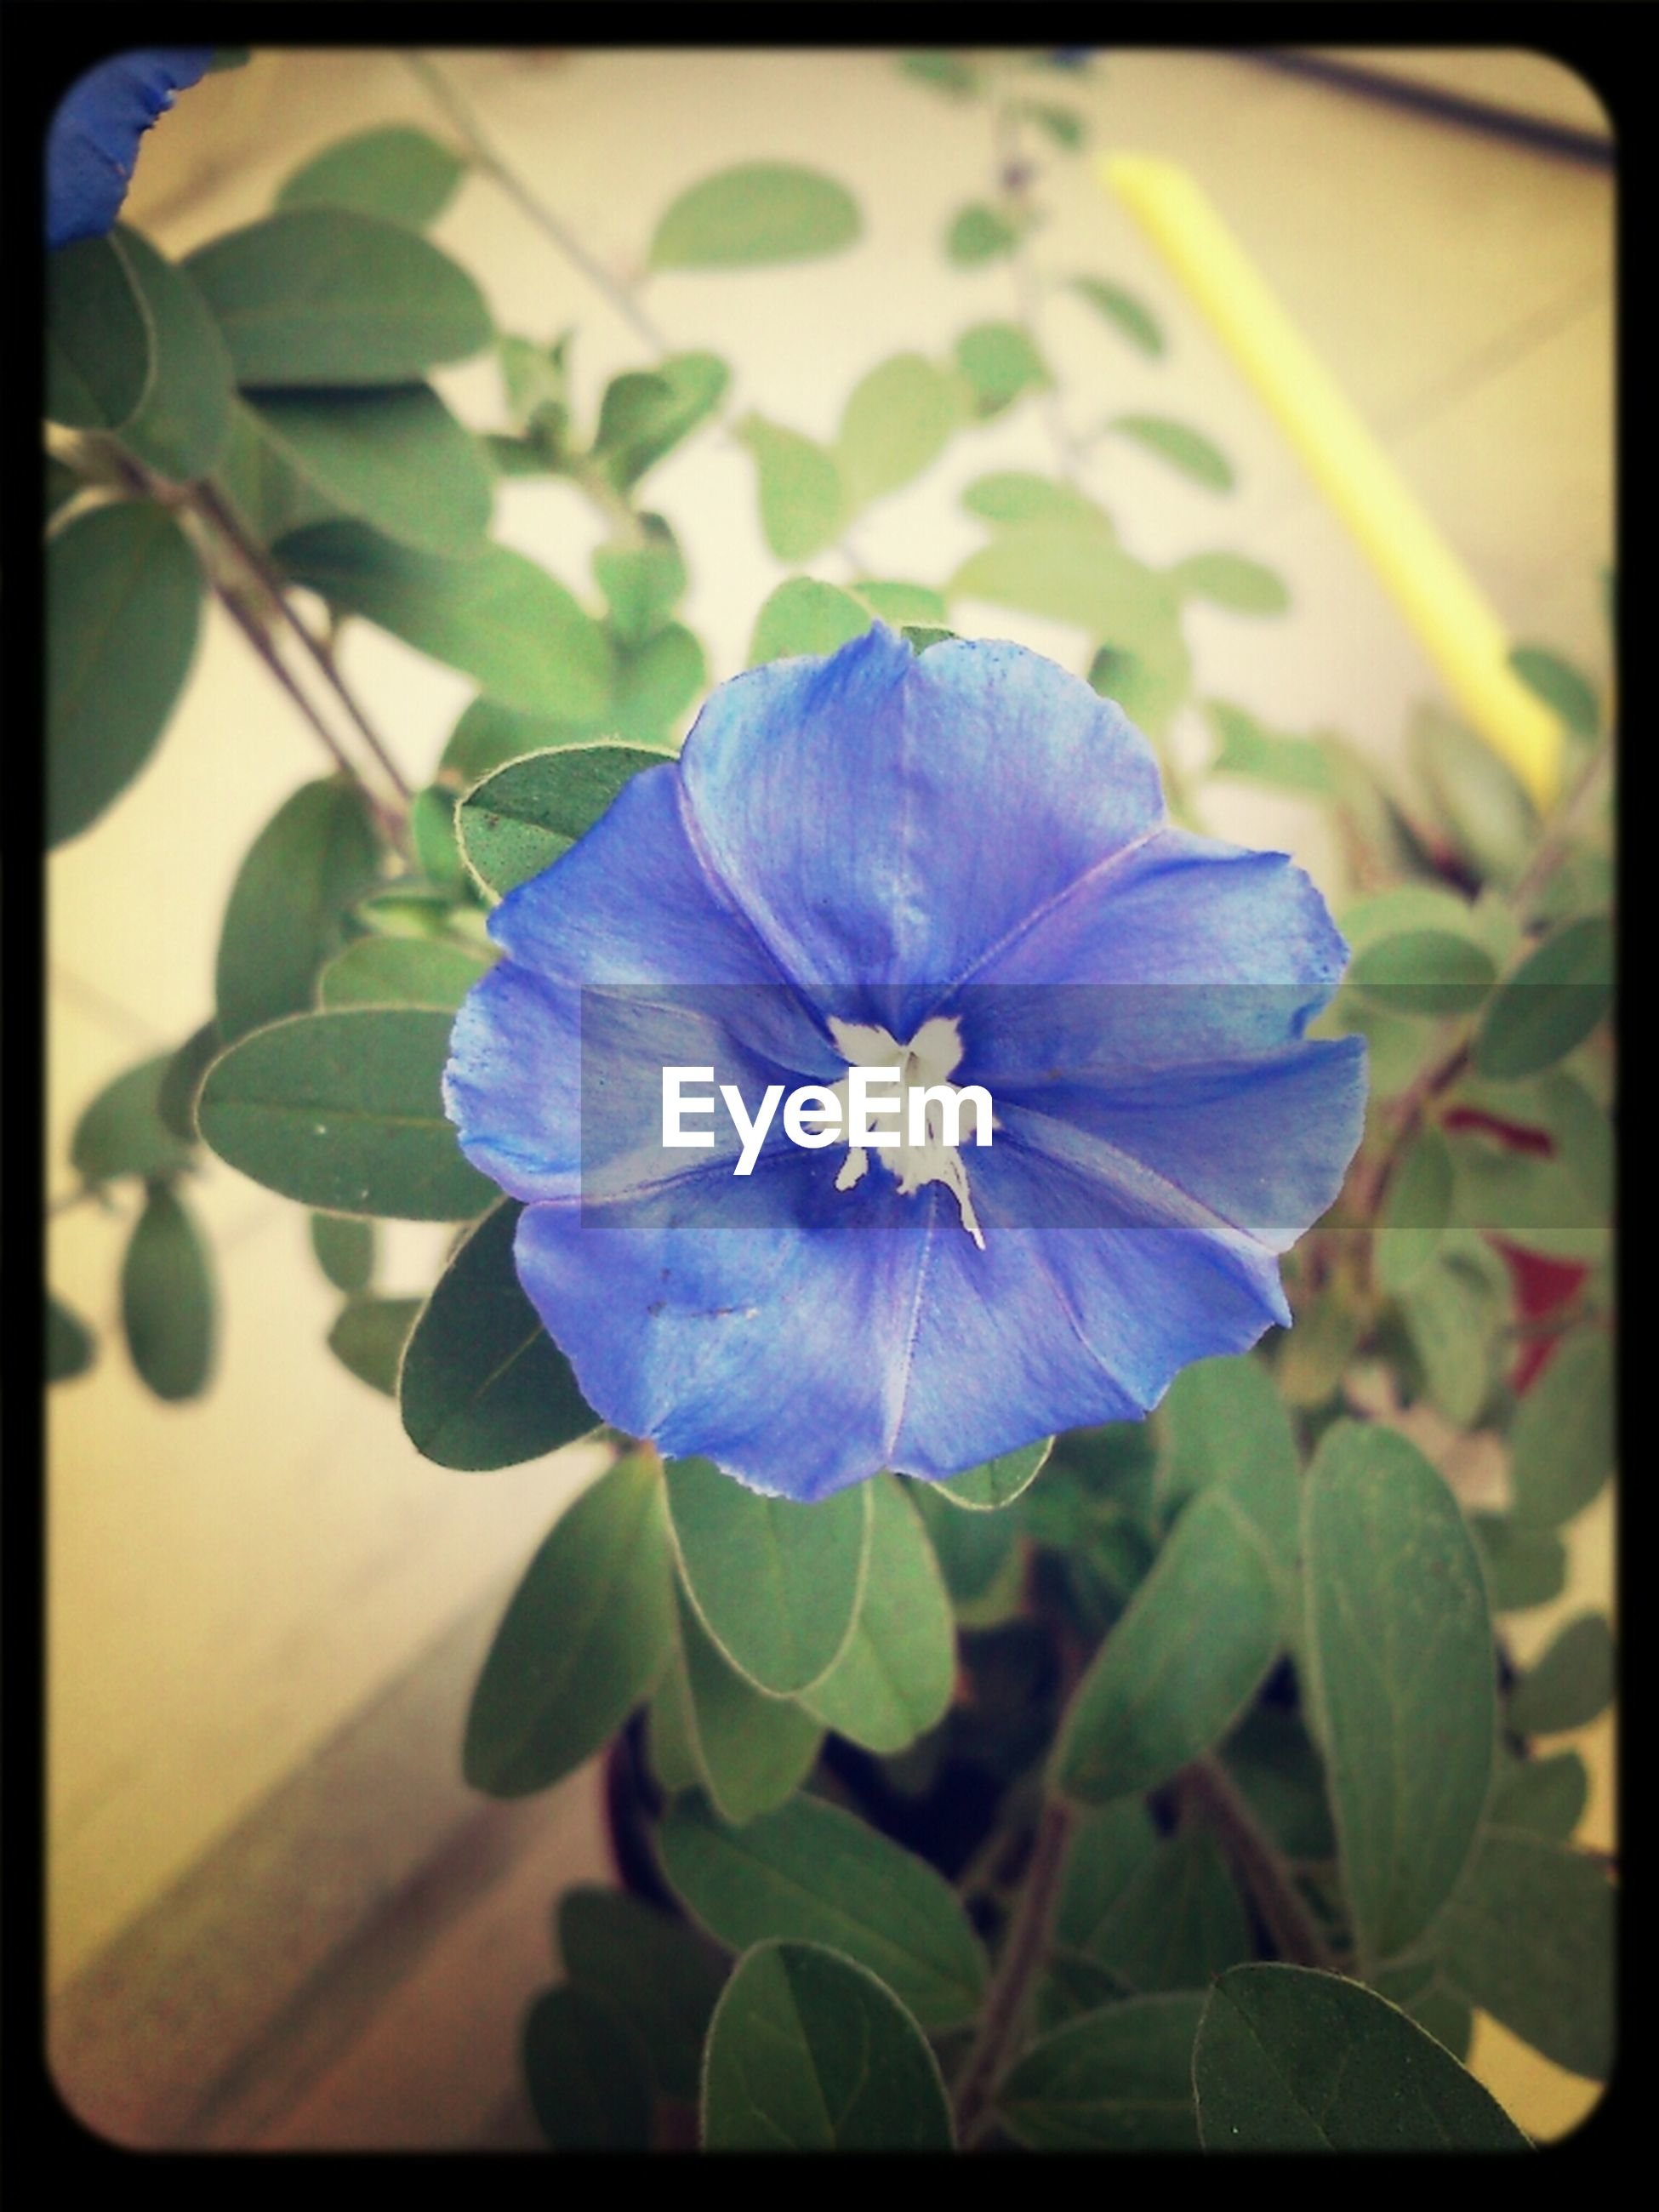 flower, petal, freshness, fragility, flower head, growth, leaf, beauty in nature, purple, transfer print, close-up, plant, nature, blooming, auto post production filter, blue, focus on foreground, single flower, in bloom, blossom